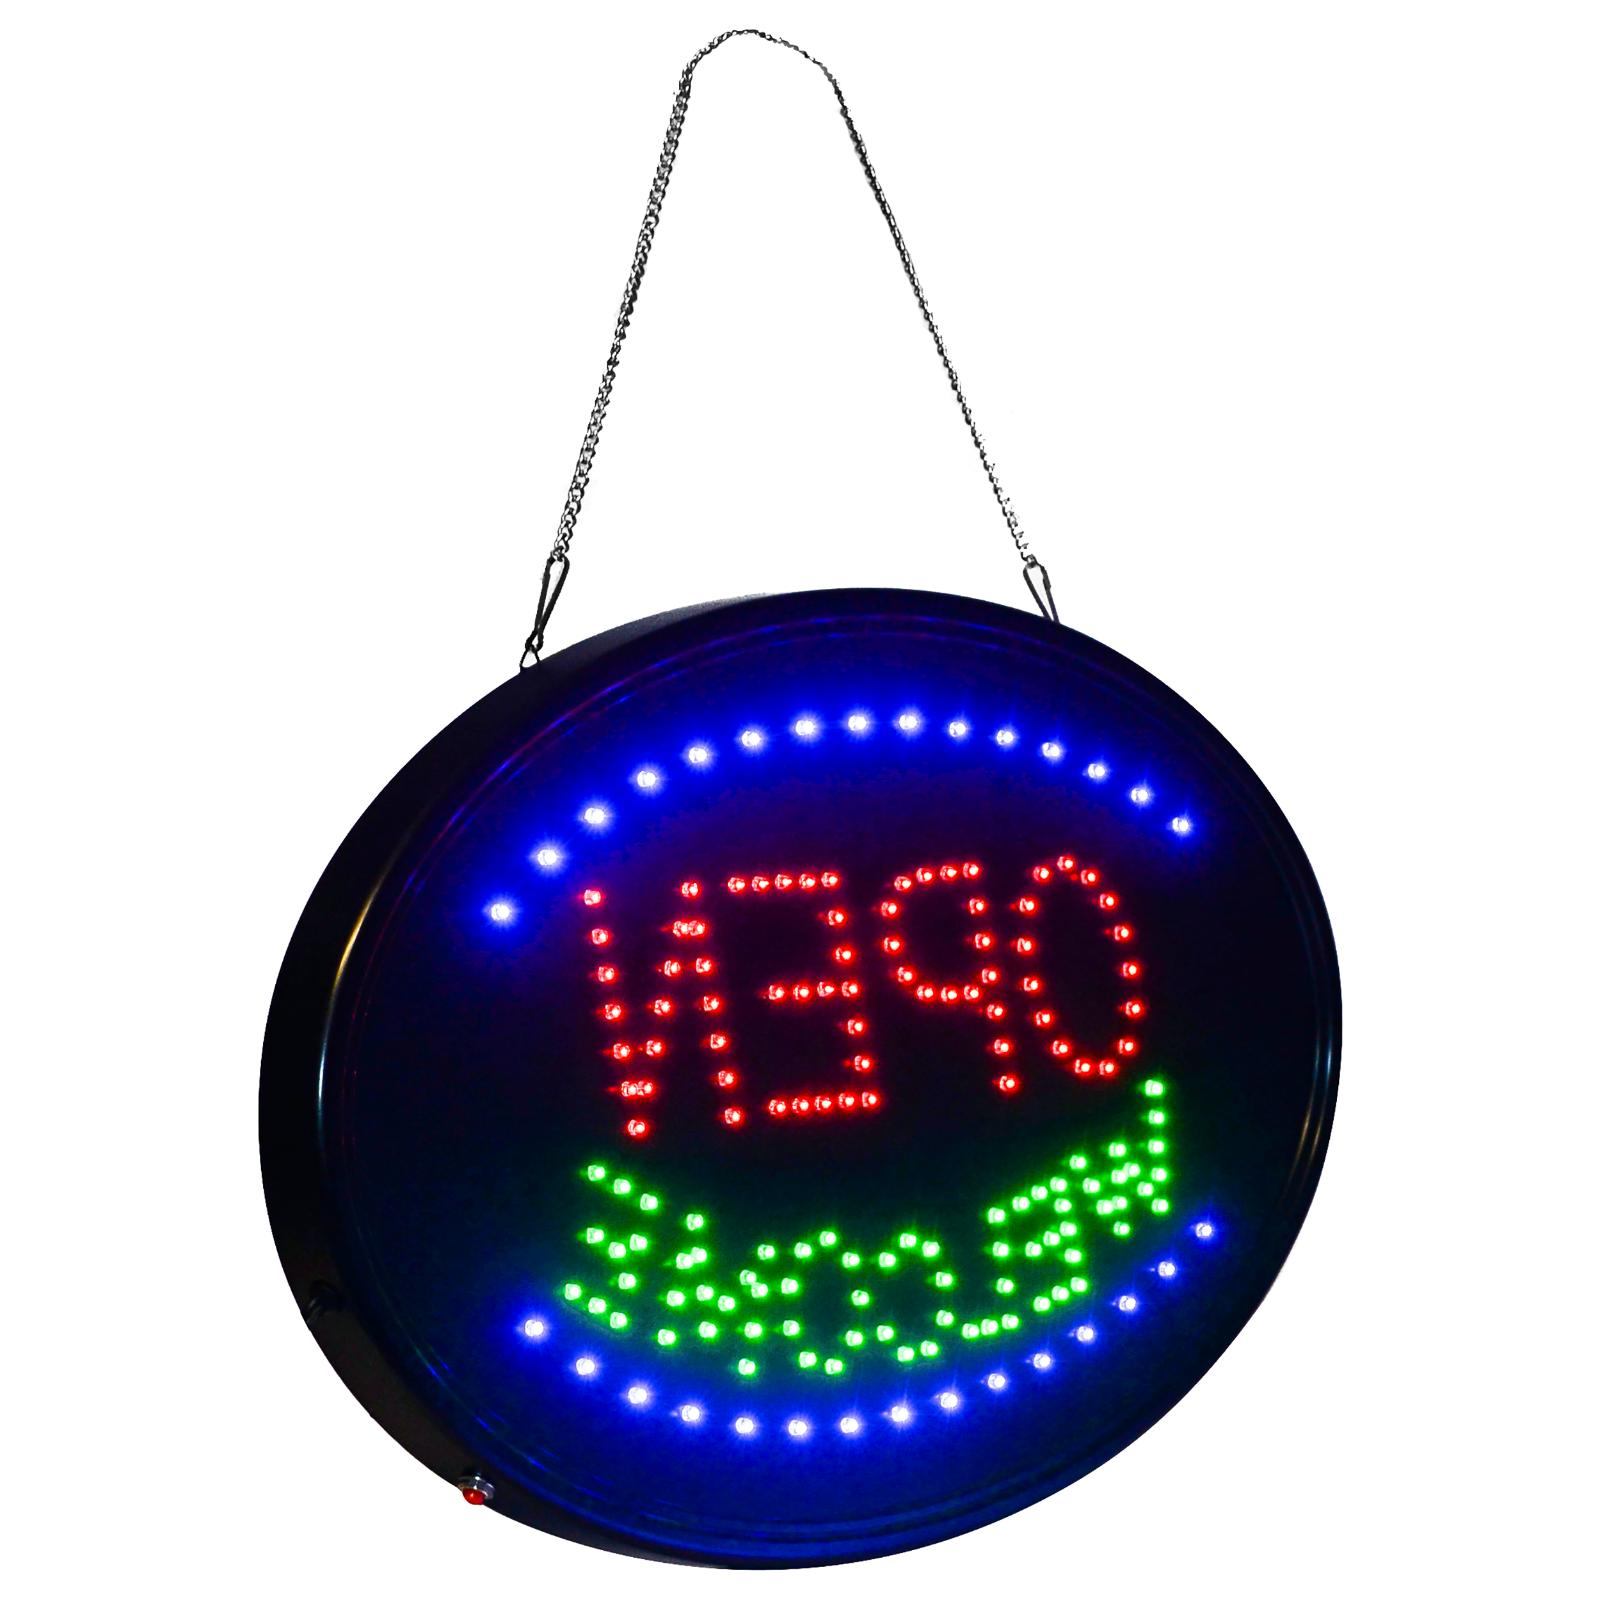 LED 3 sign OPEN -THE Display X